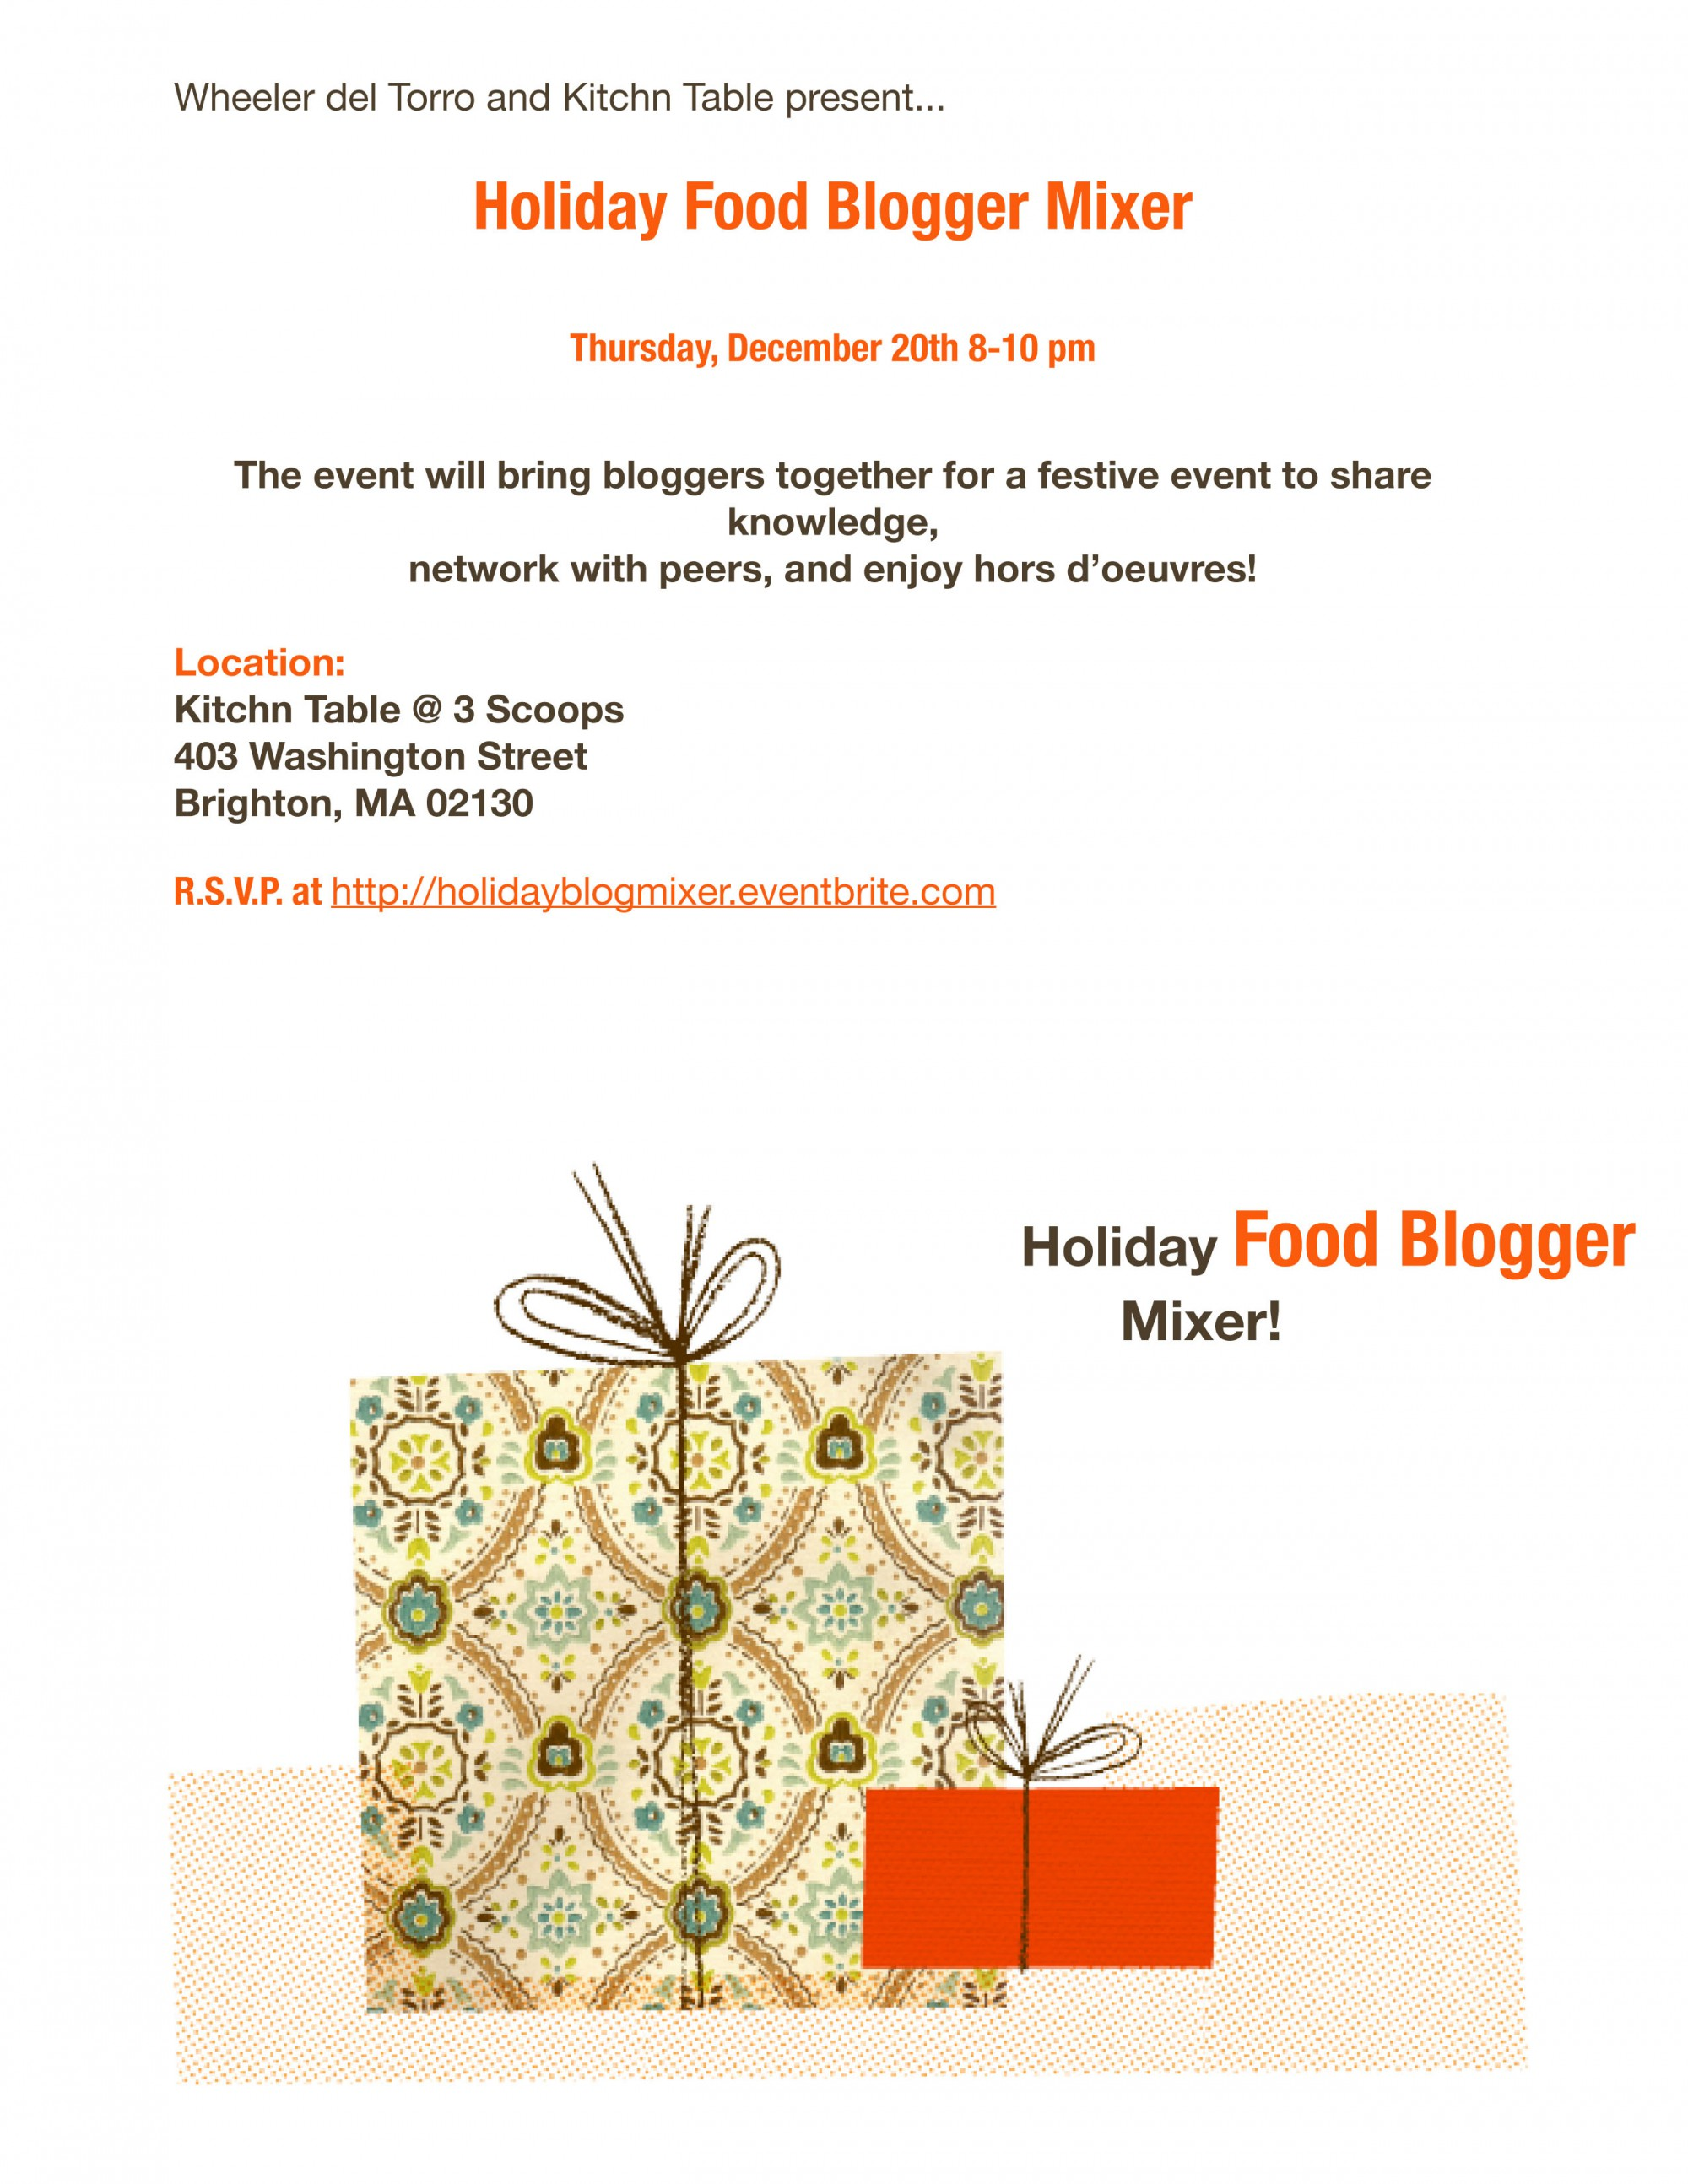 Kitchn Table Holiday Food Blogger Mixer Invite